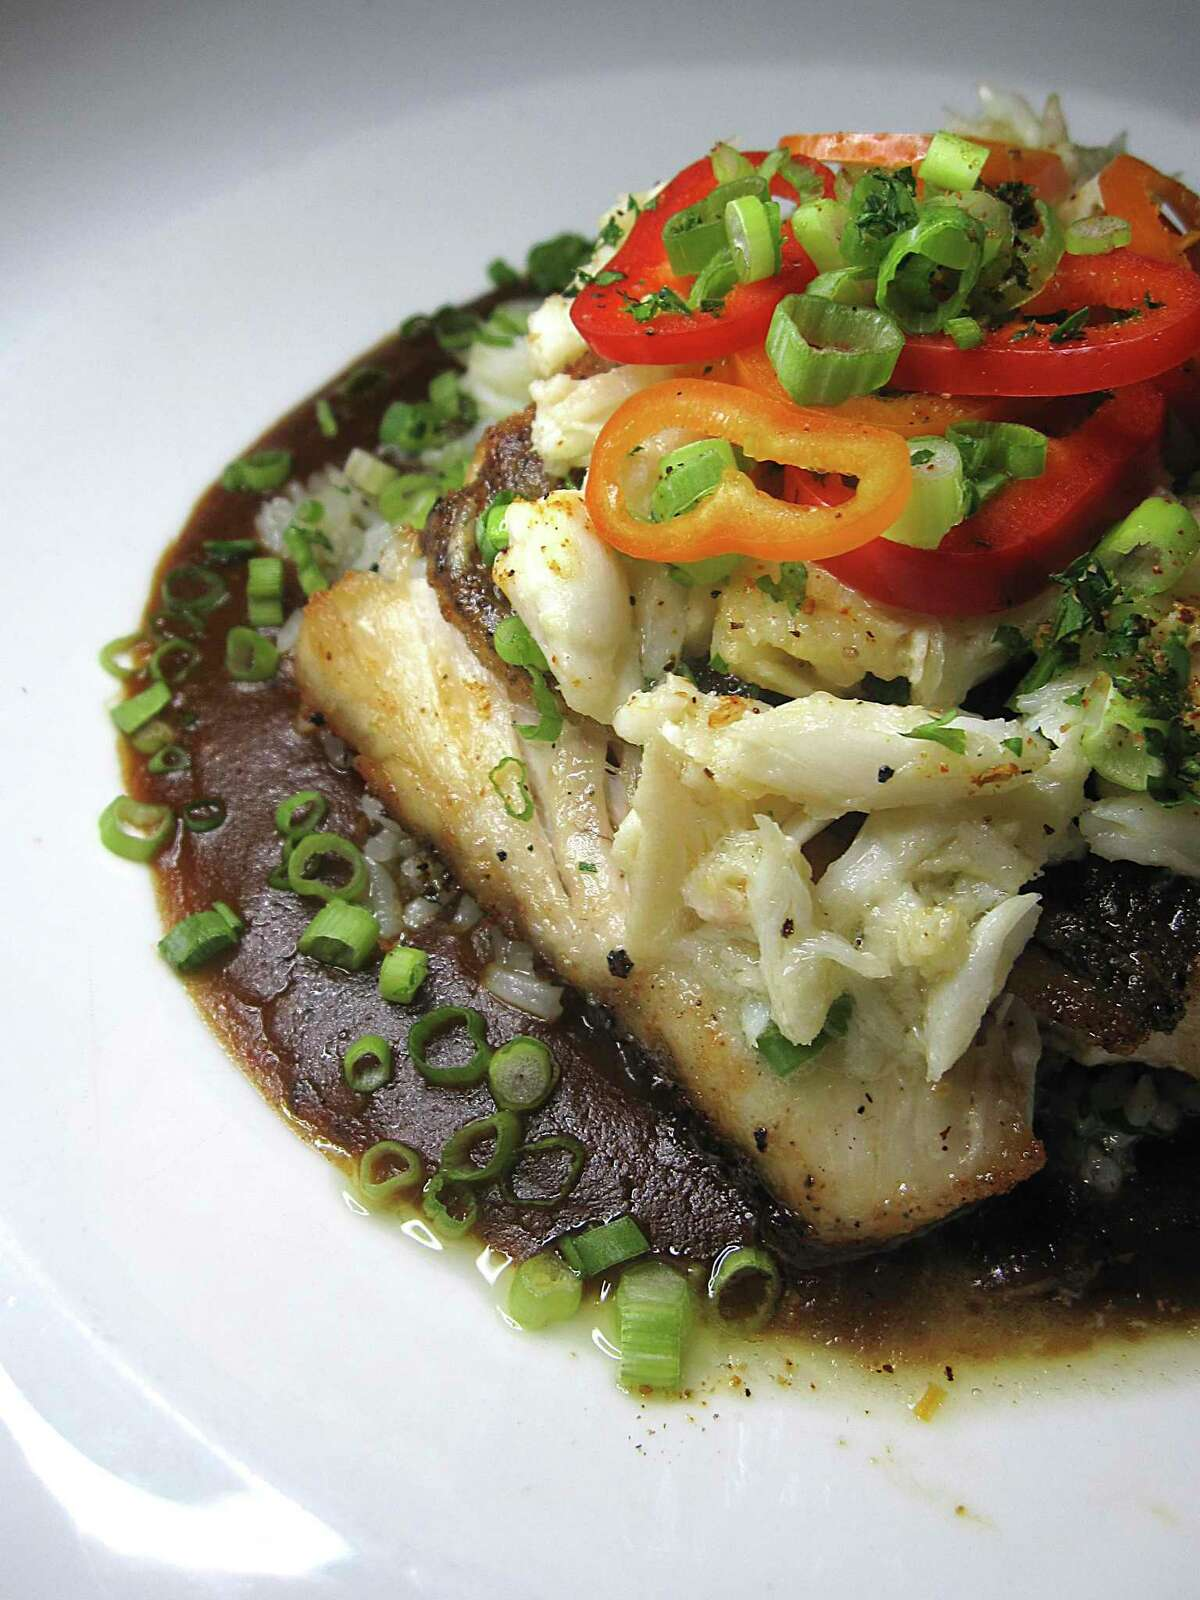 Pan-fried Gulf snapper comes with gumbo sauce and an optional dress of crab meat at Southerleigh Fine Food & Brewery at the Pearl.